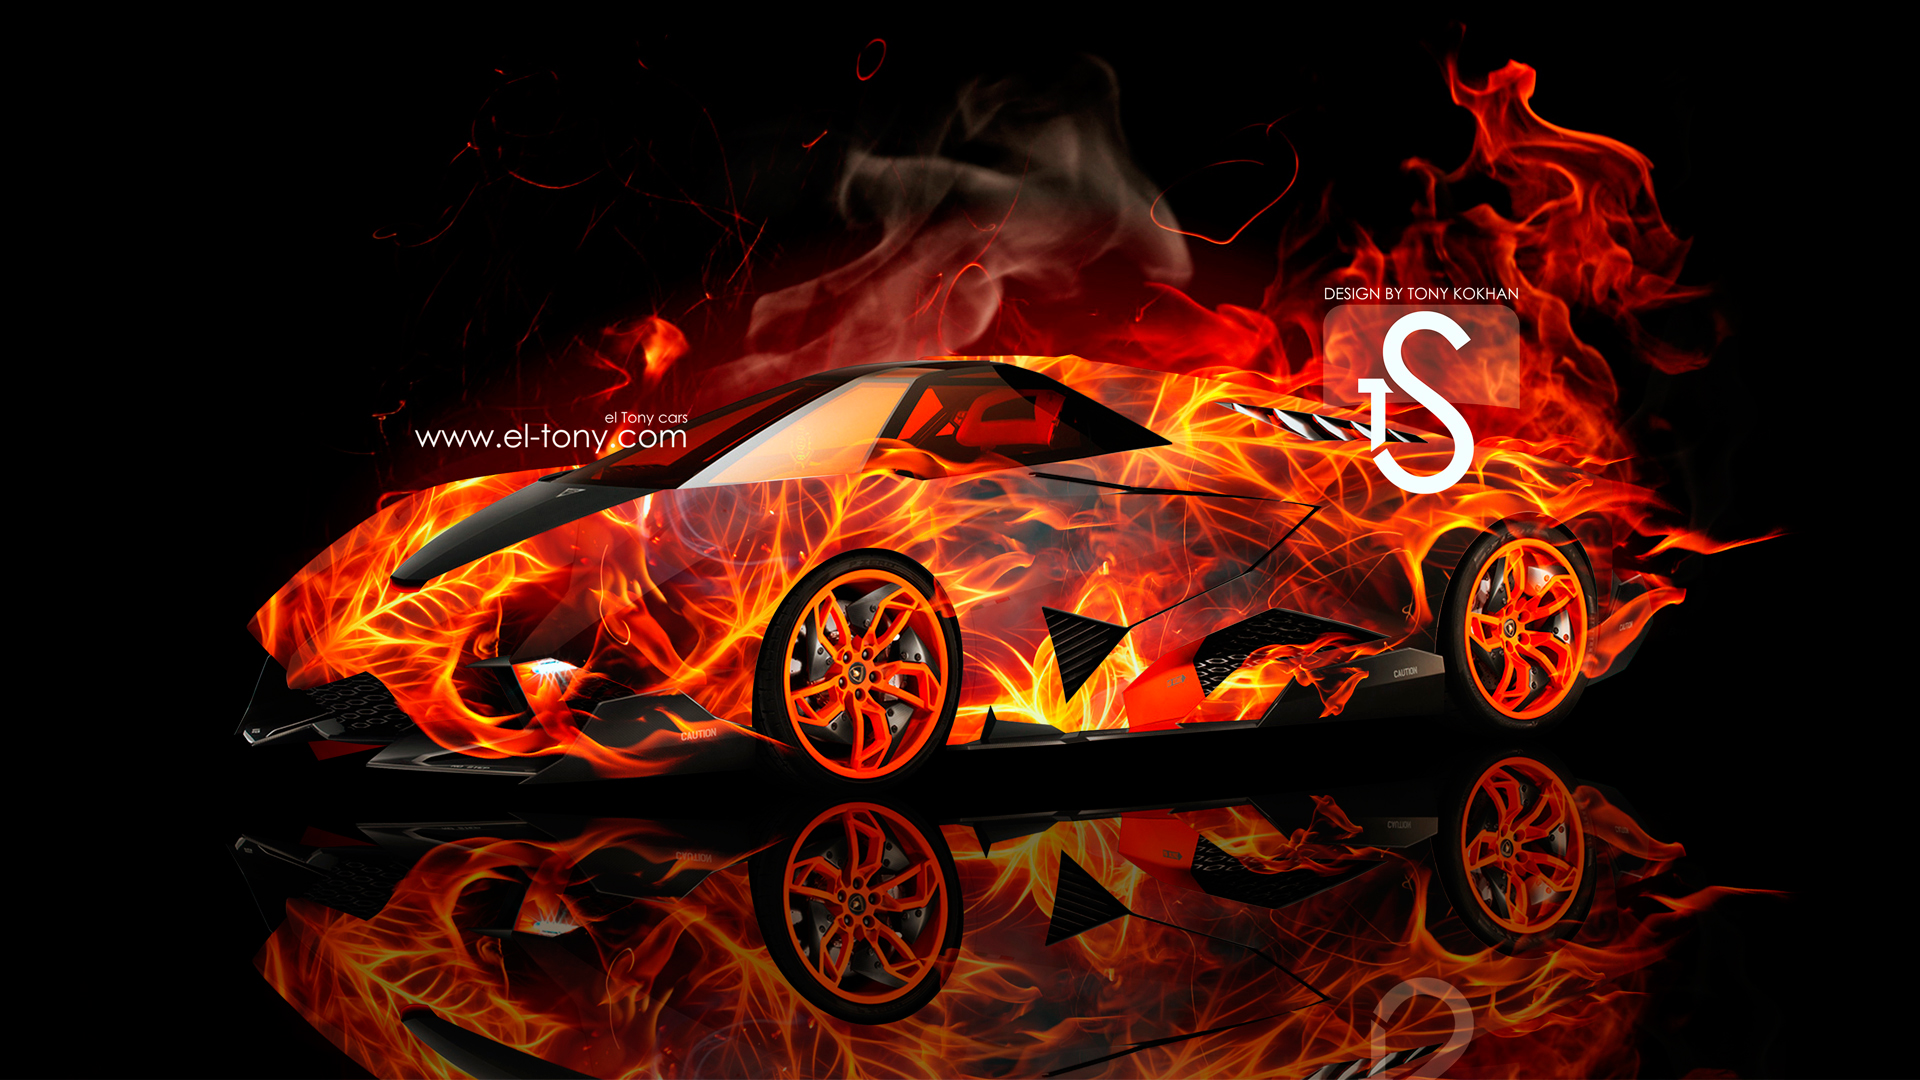 lamborghini egoista fire car 2013 hd wallpaper 1920x1080